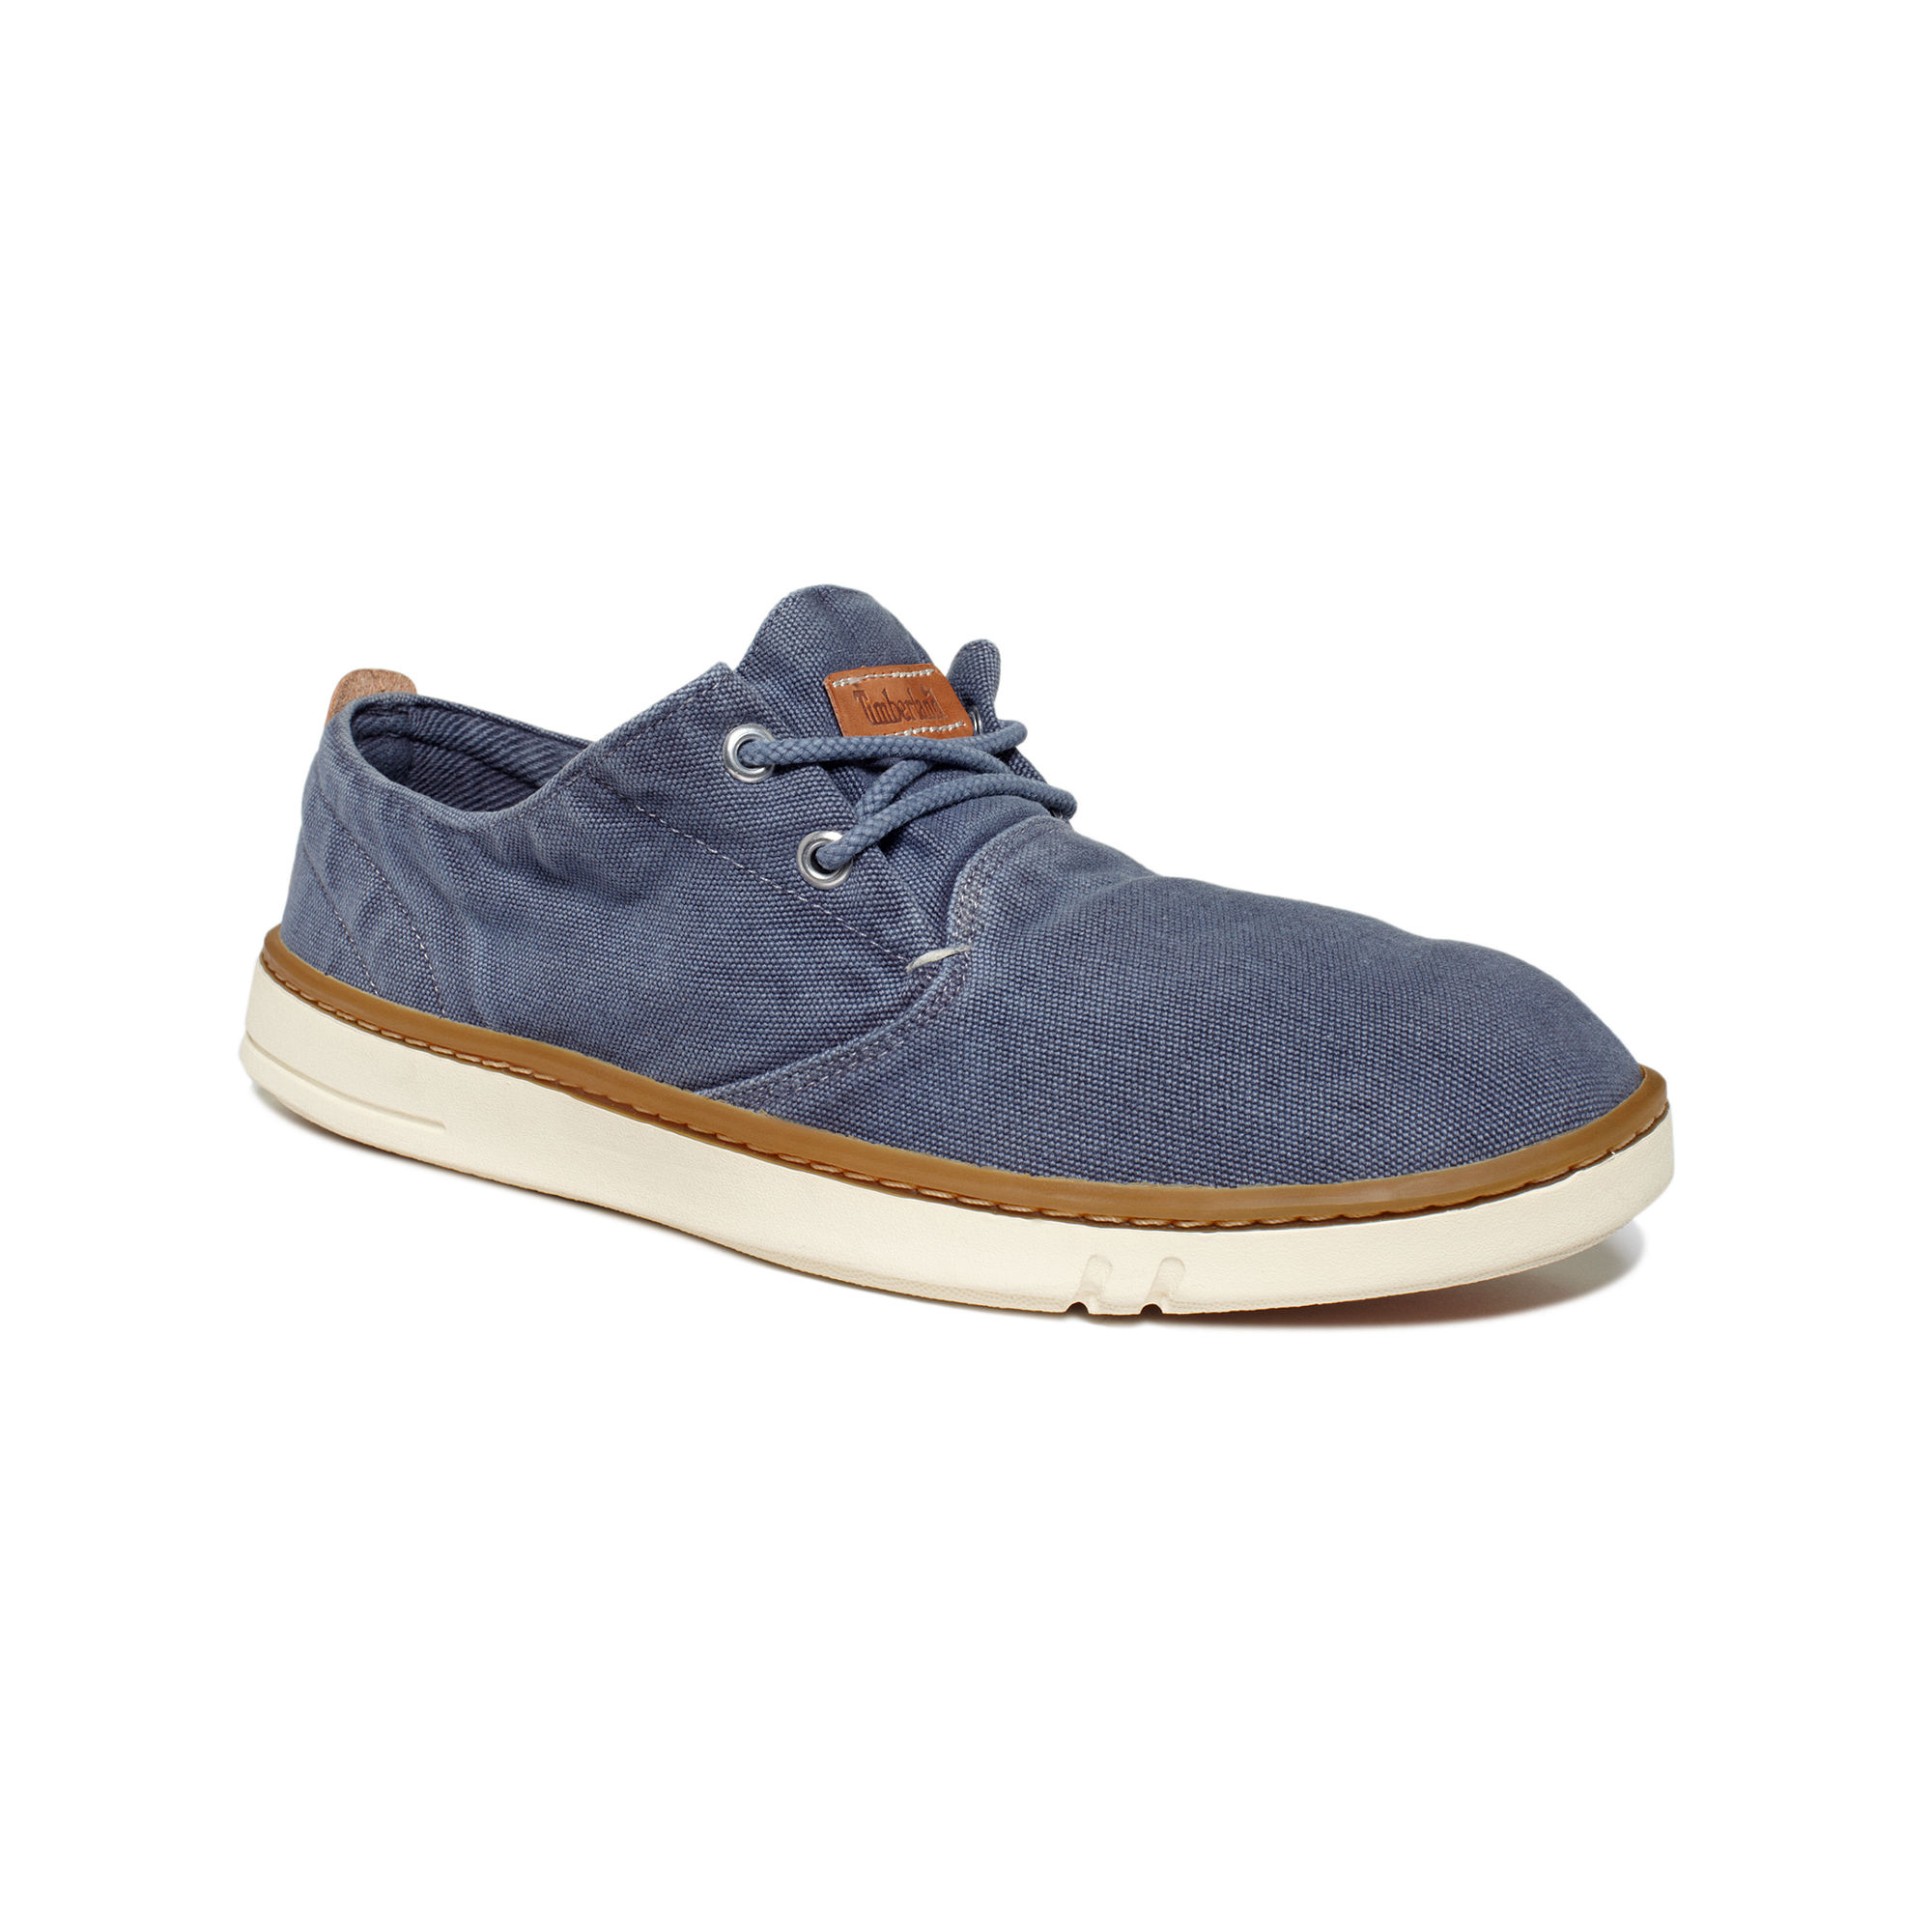 1b58adcc9478 Lyst - Timberland Earthkeepers Hookset Handcrafted Canvas Shoes in ...